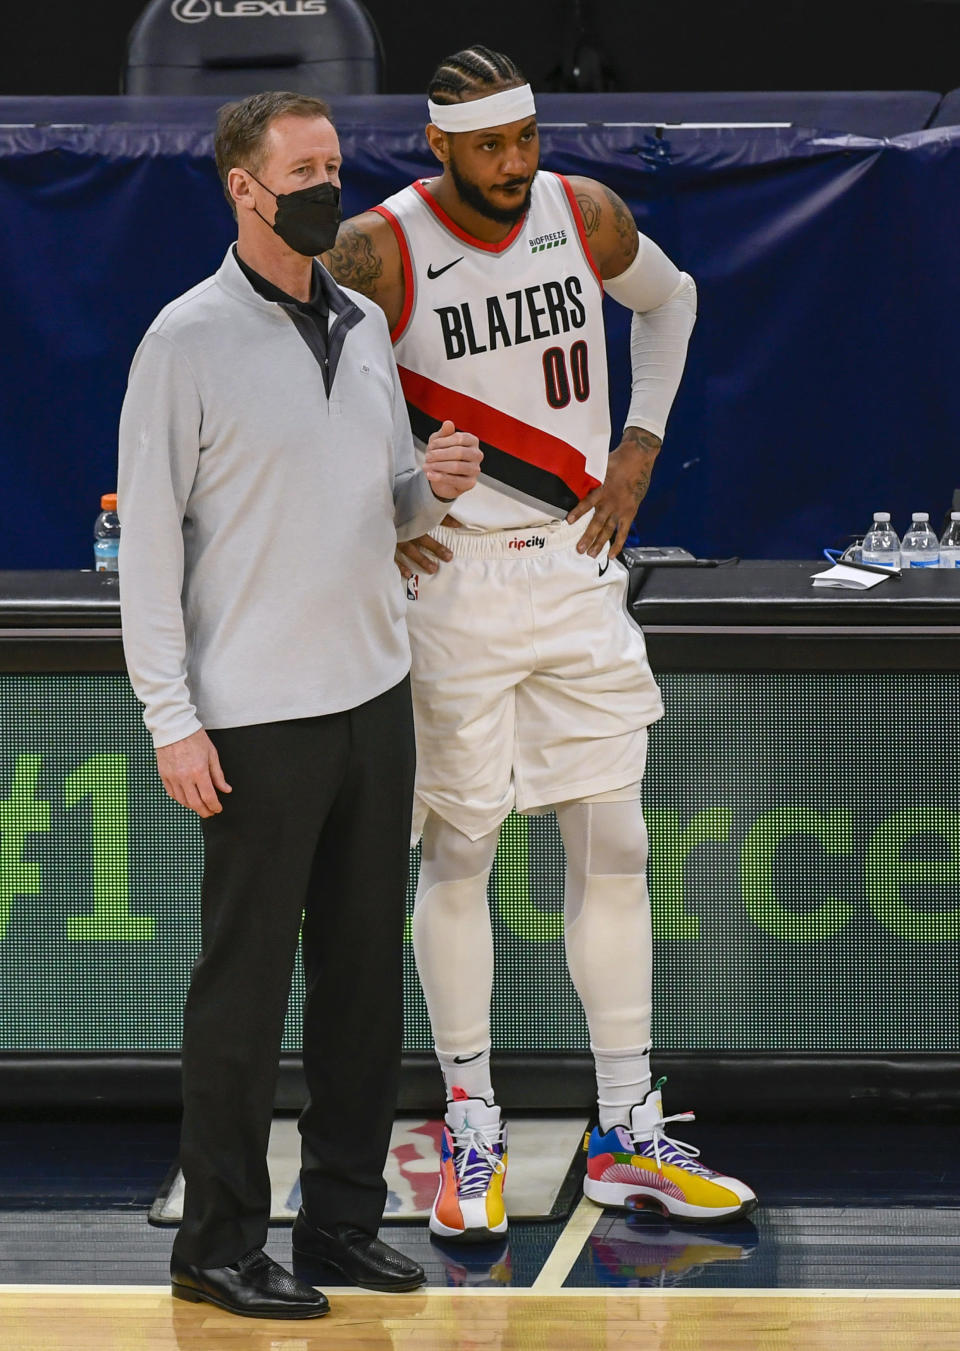 Portland Trail Blazers coach Terry Stotts, left, talks with forward Carmelo Anthony during a stop in play in the second half of the team's NBA basketball game against the Minnesota Timberwolves on Saturday, March 13, 2021, in Minneapolis. (AP Photo/Craig Lassig)